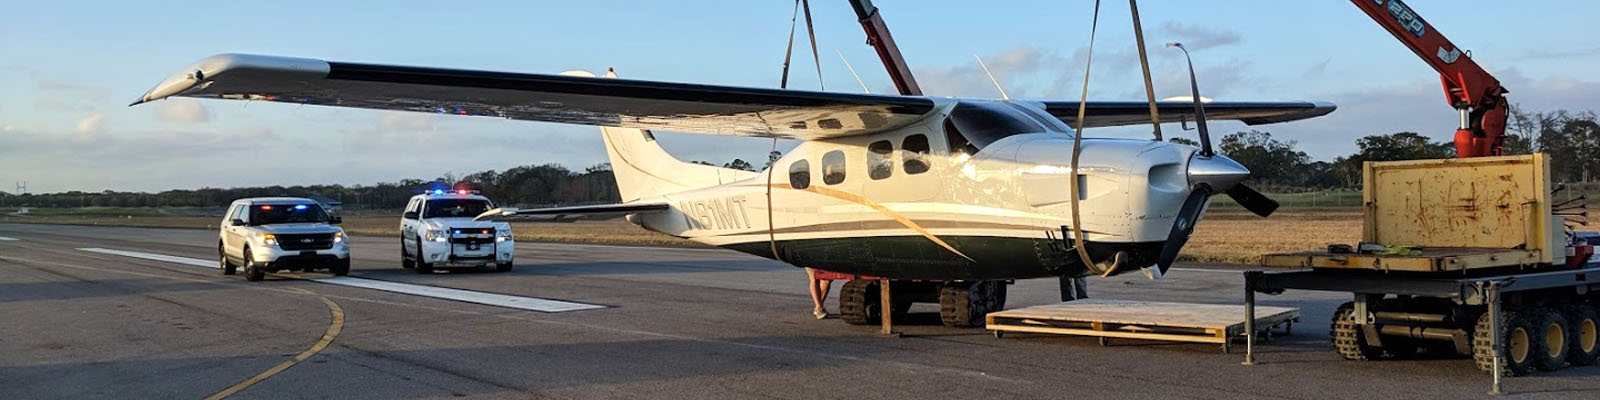 Florida Air Recovery Aircraft Recovery